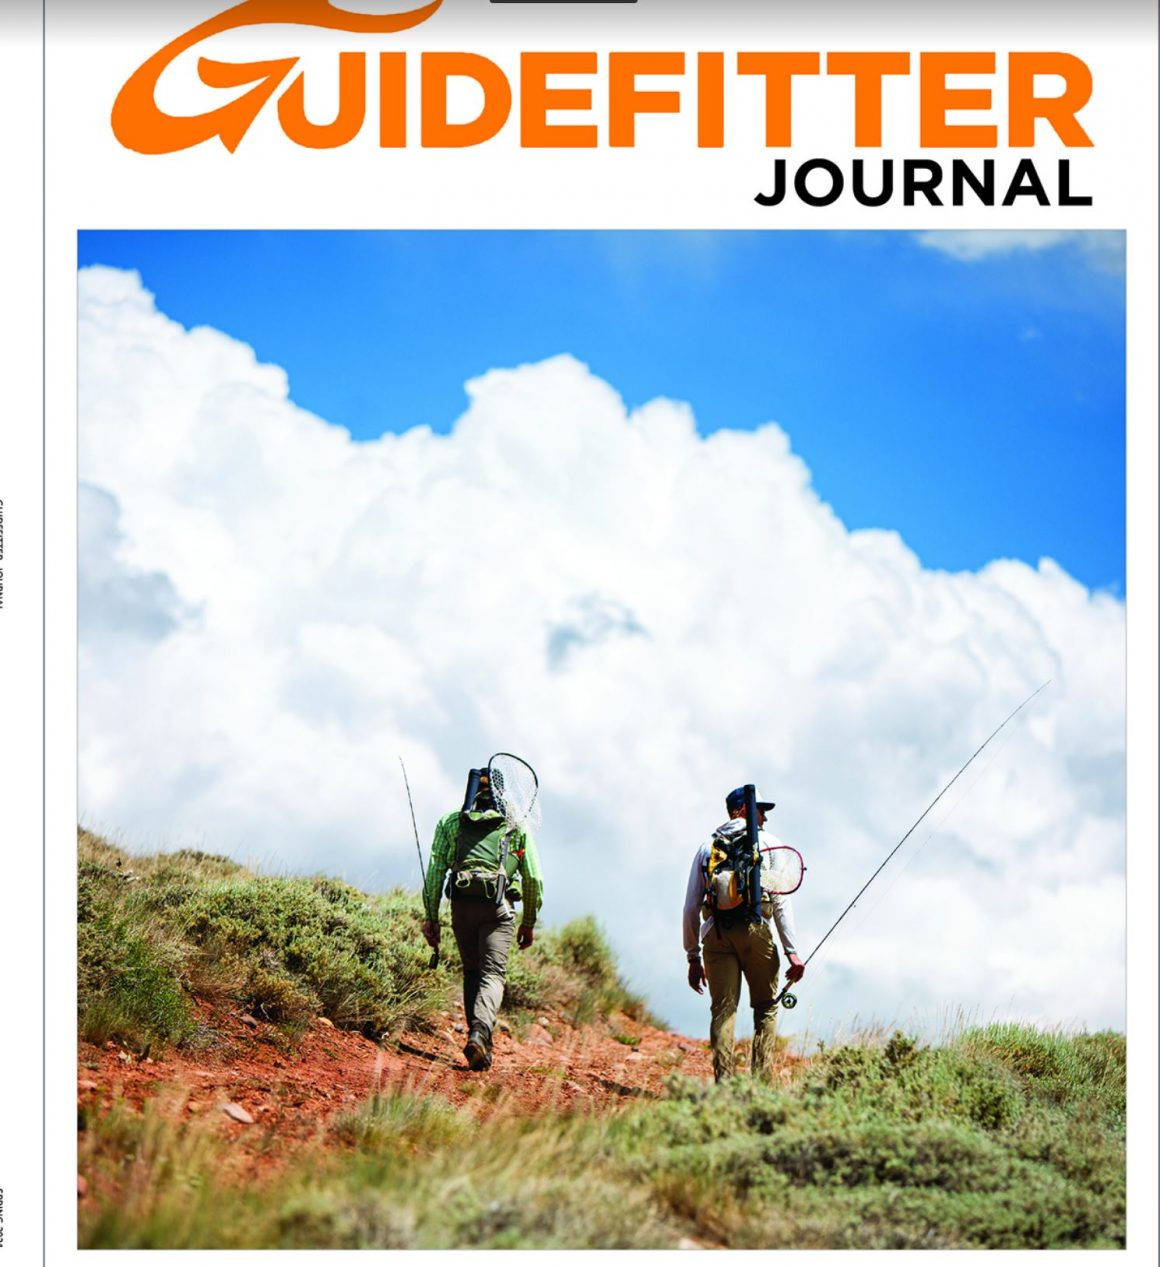 Spring 2021 Issue of The Guidefitter Journal Now Available